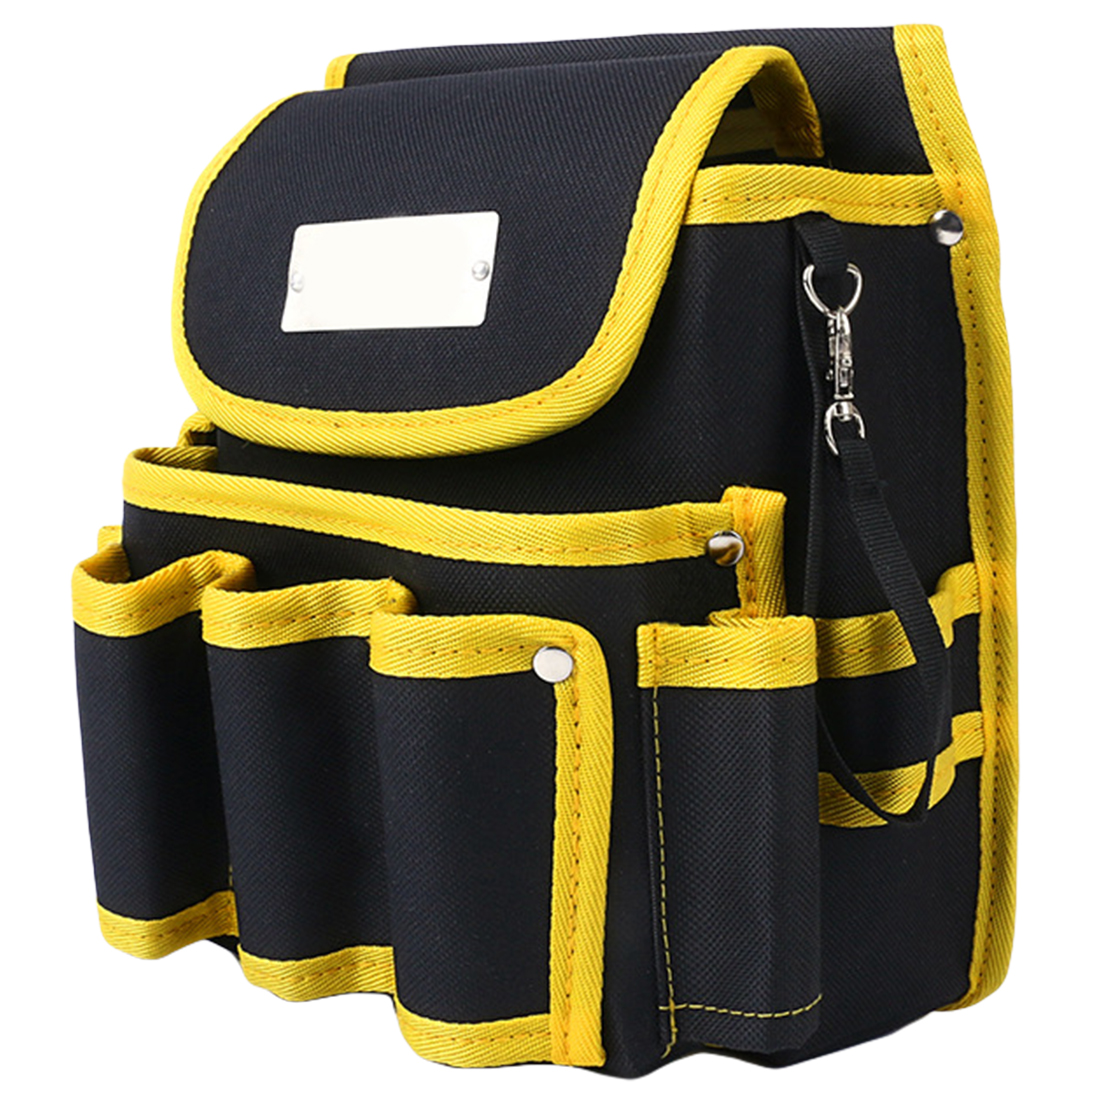 Adjustable Belt Pocket Pouch Telecommunications Holder Electrician 600D Water Proof Cloth Rivet Fixed Tool Bag 23 X 13 X 23cm